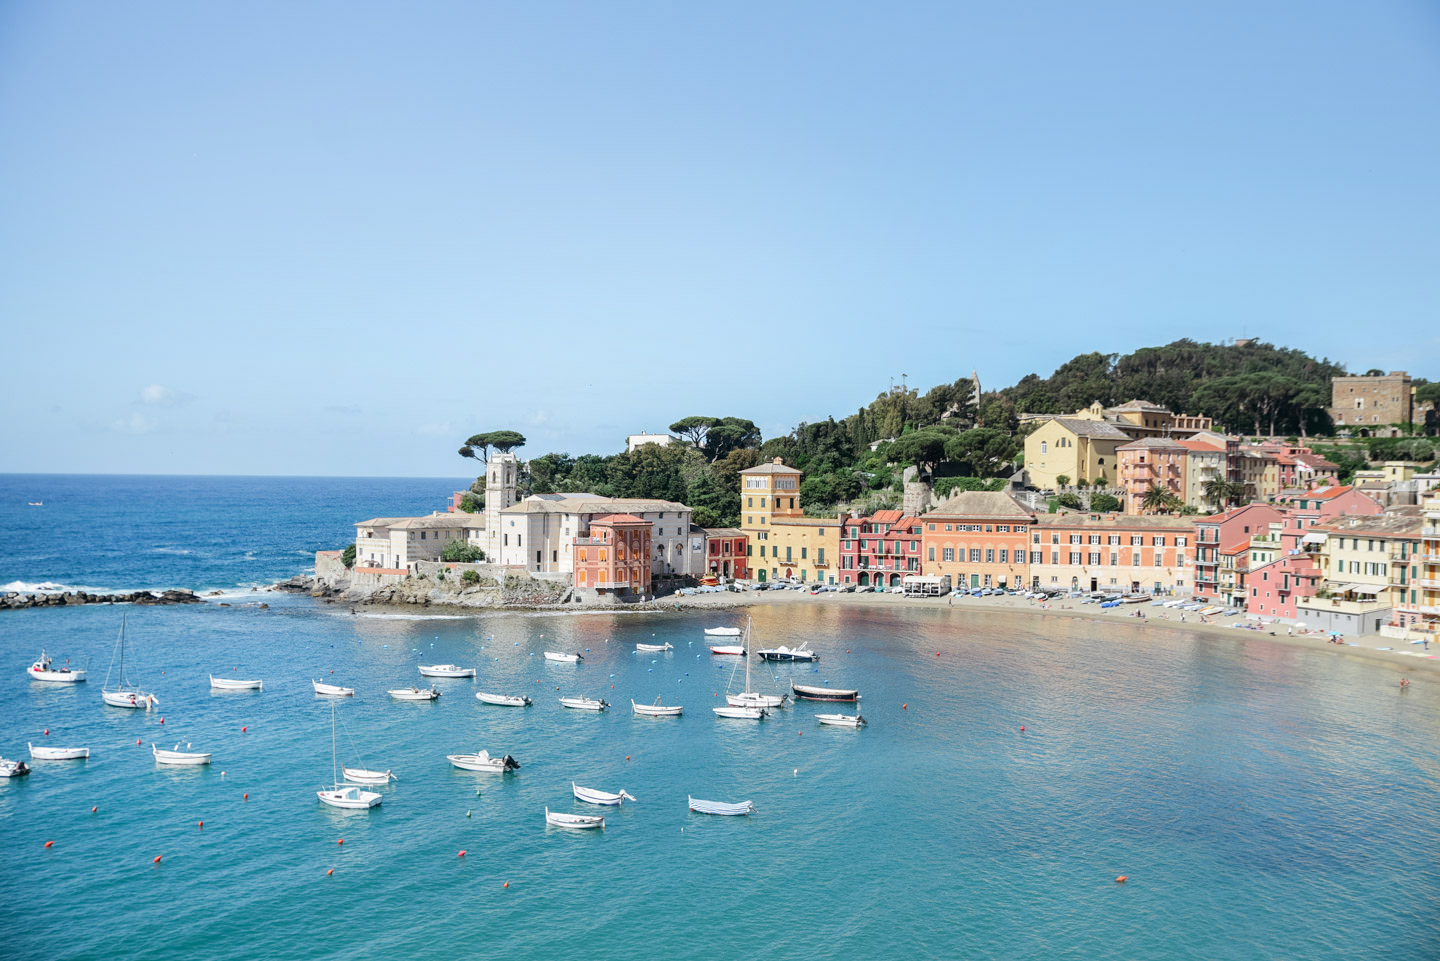 Blog-Mode-And-The-City-Lifestyle-Italie-Sestri-Levante-Cinque-Terre-5